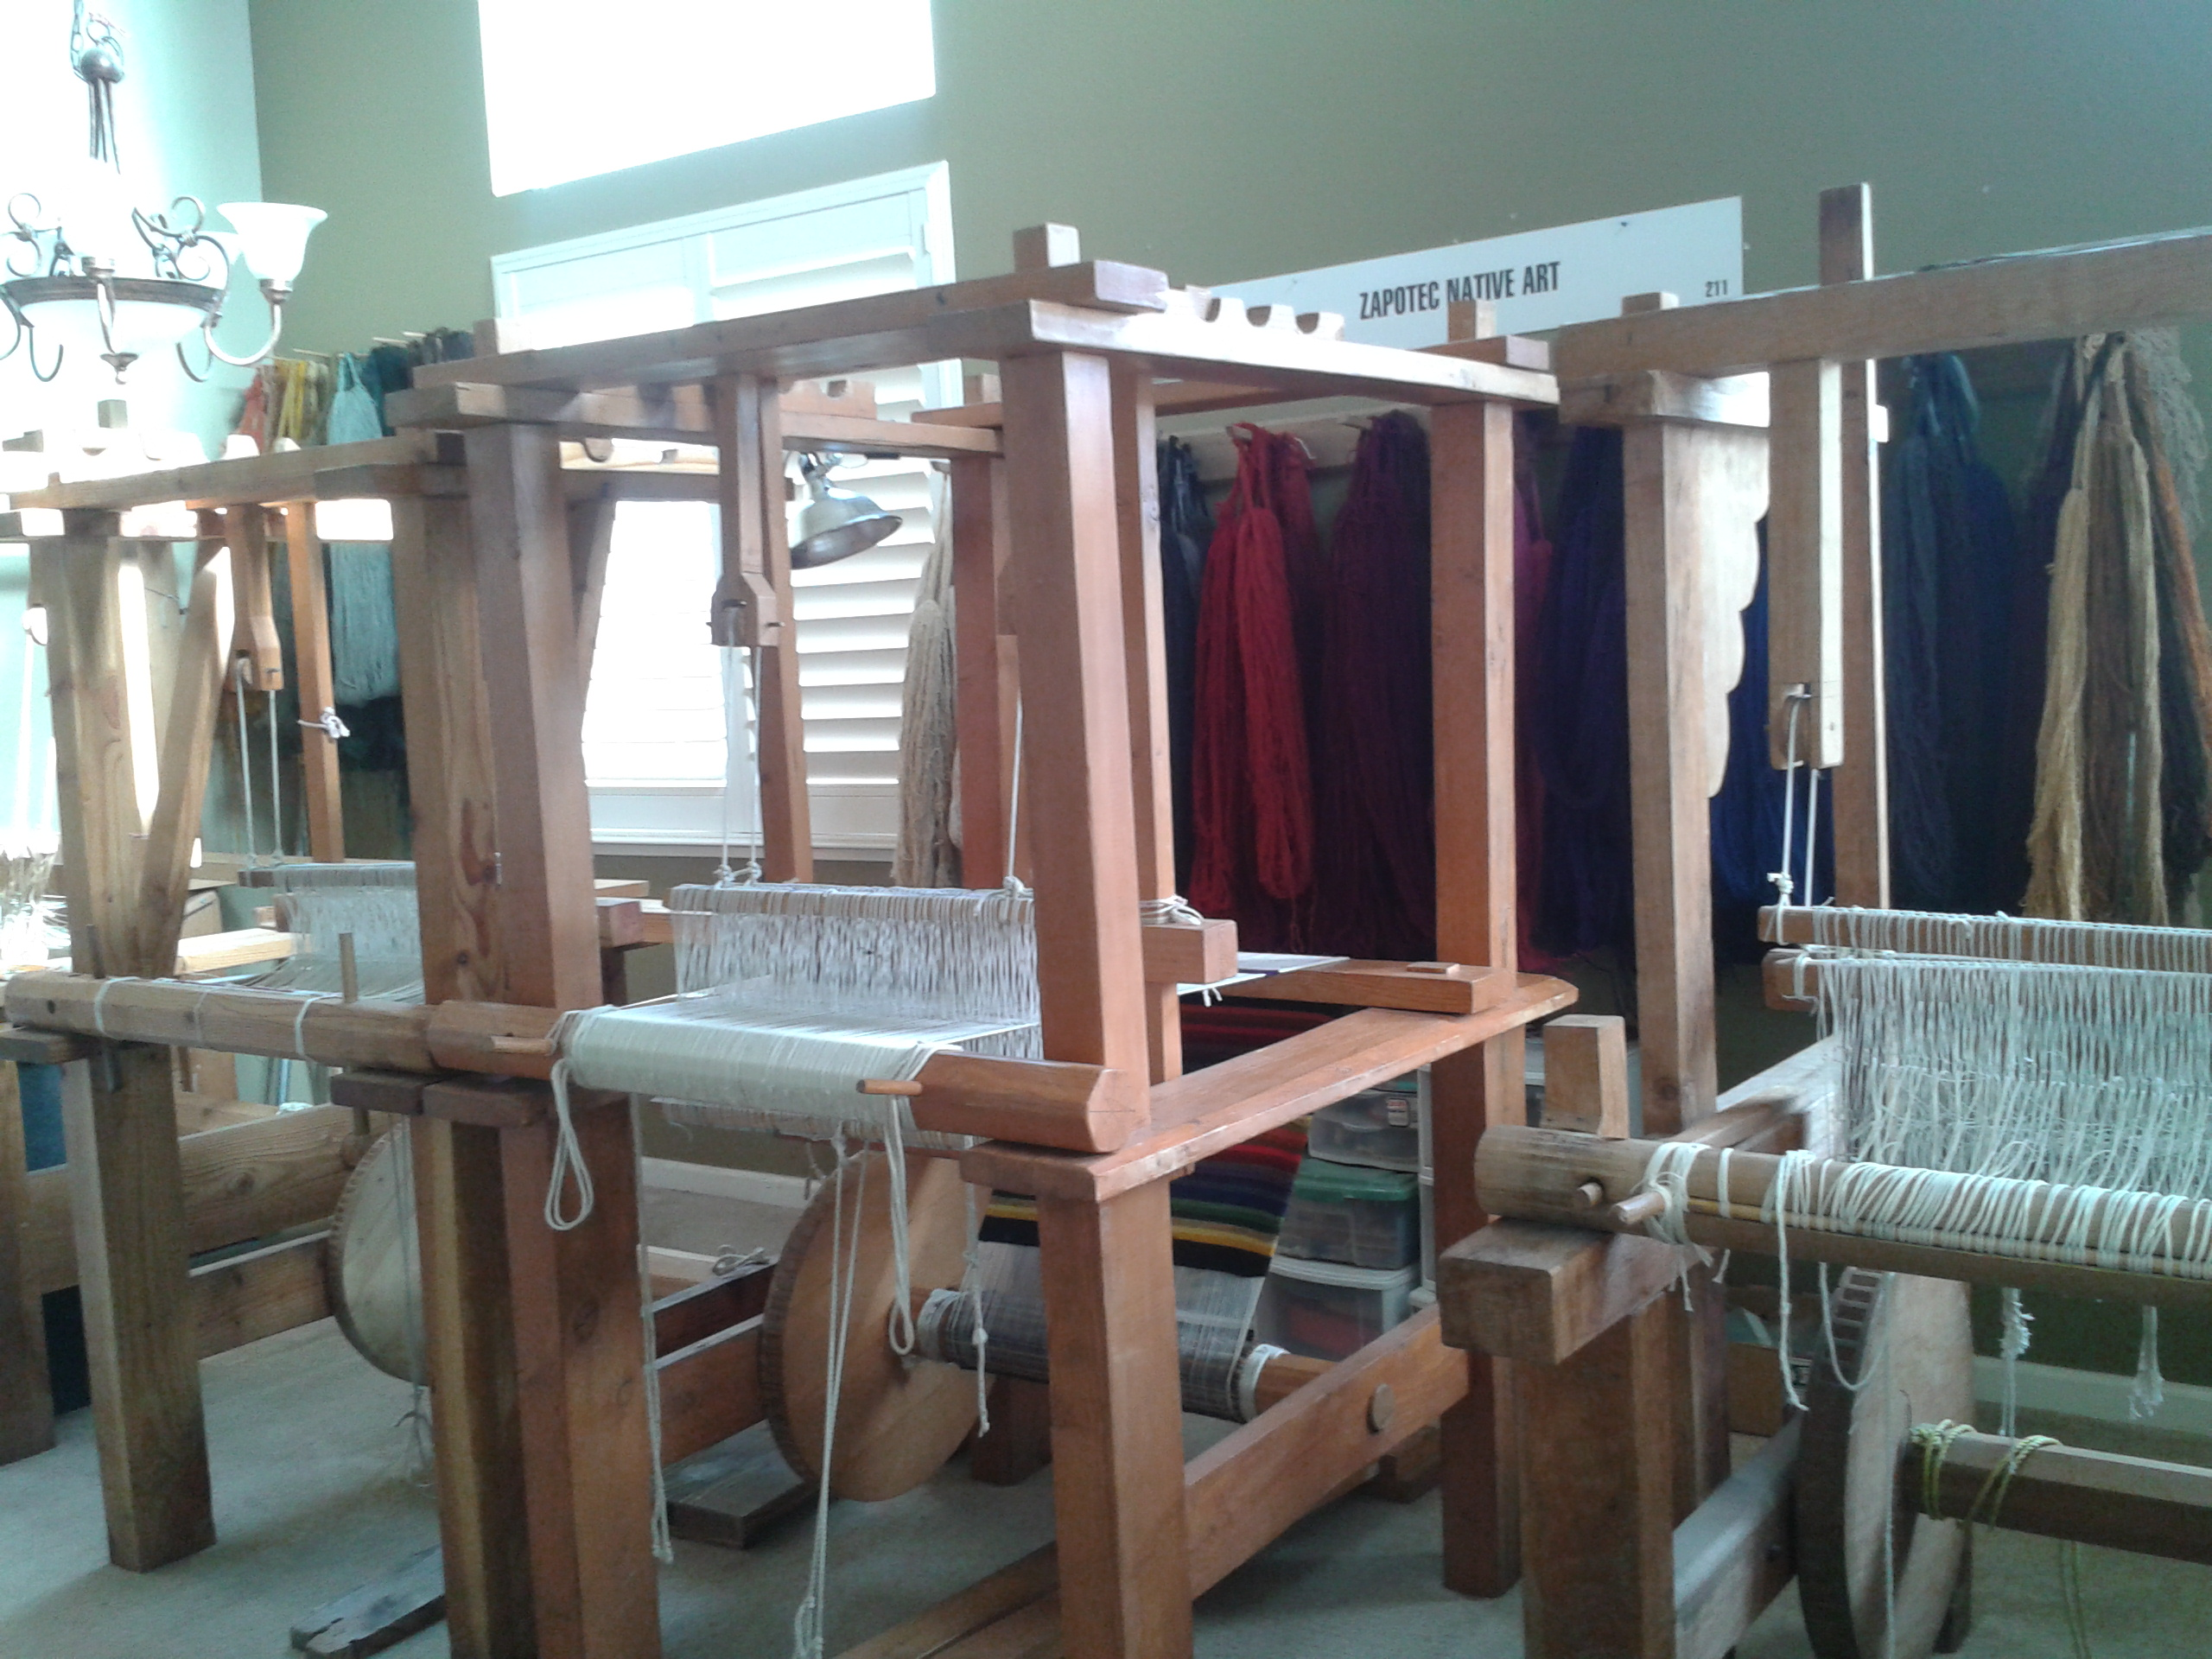 Three looms in the main room